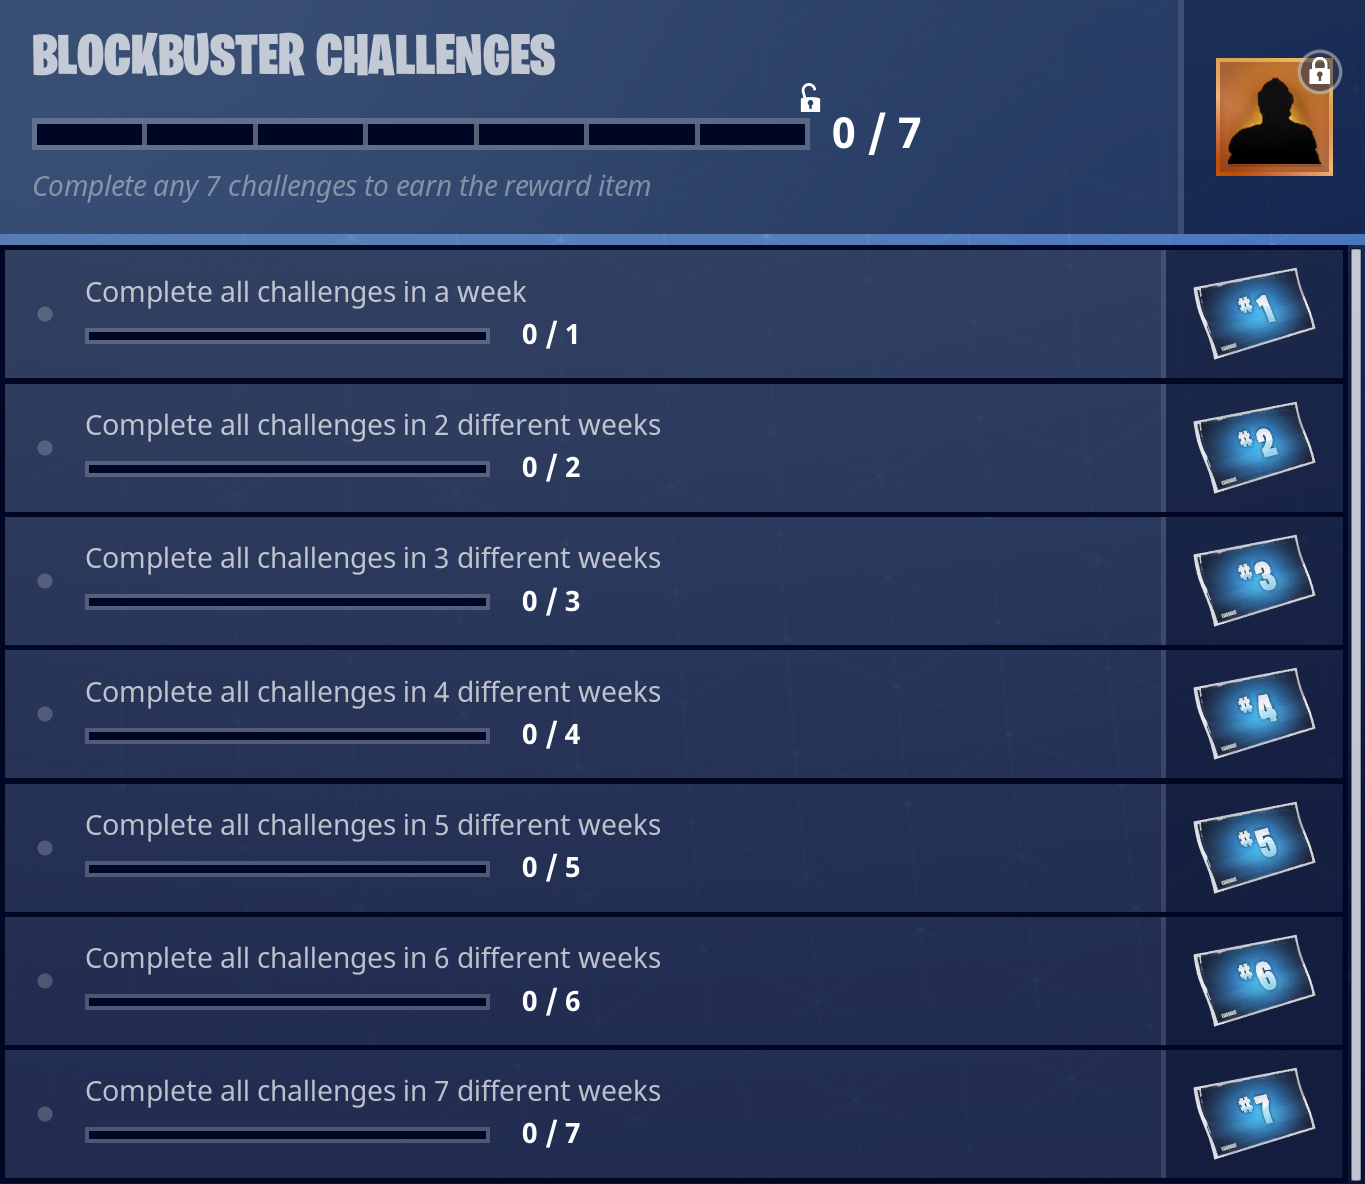 fortnite blockbuster challenges if you ve been solid at completing your battle pass in the past few seasons then this shouldn t be a problem for you - blockbuster skin season 4 fortnite